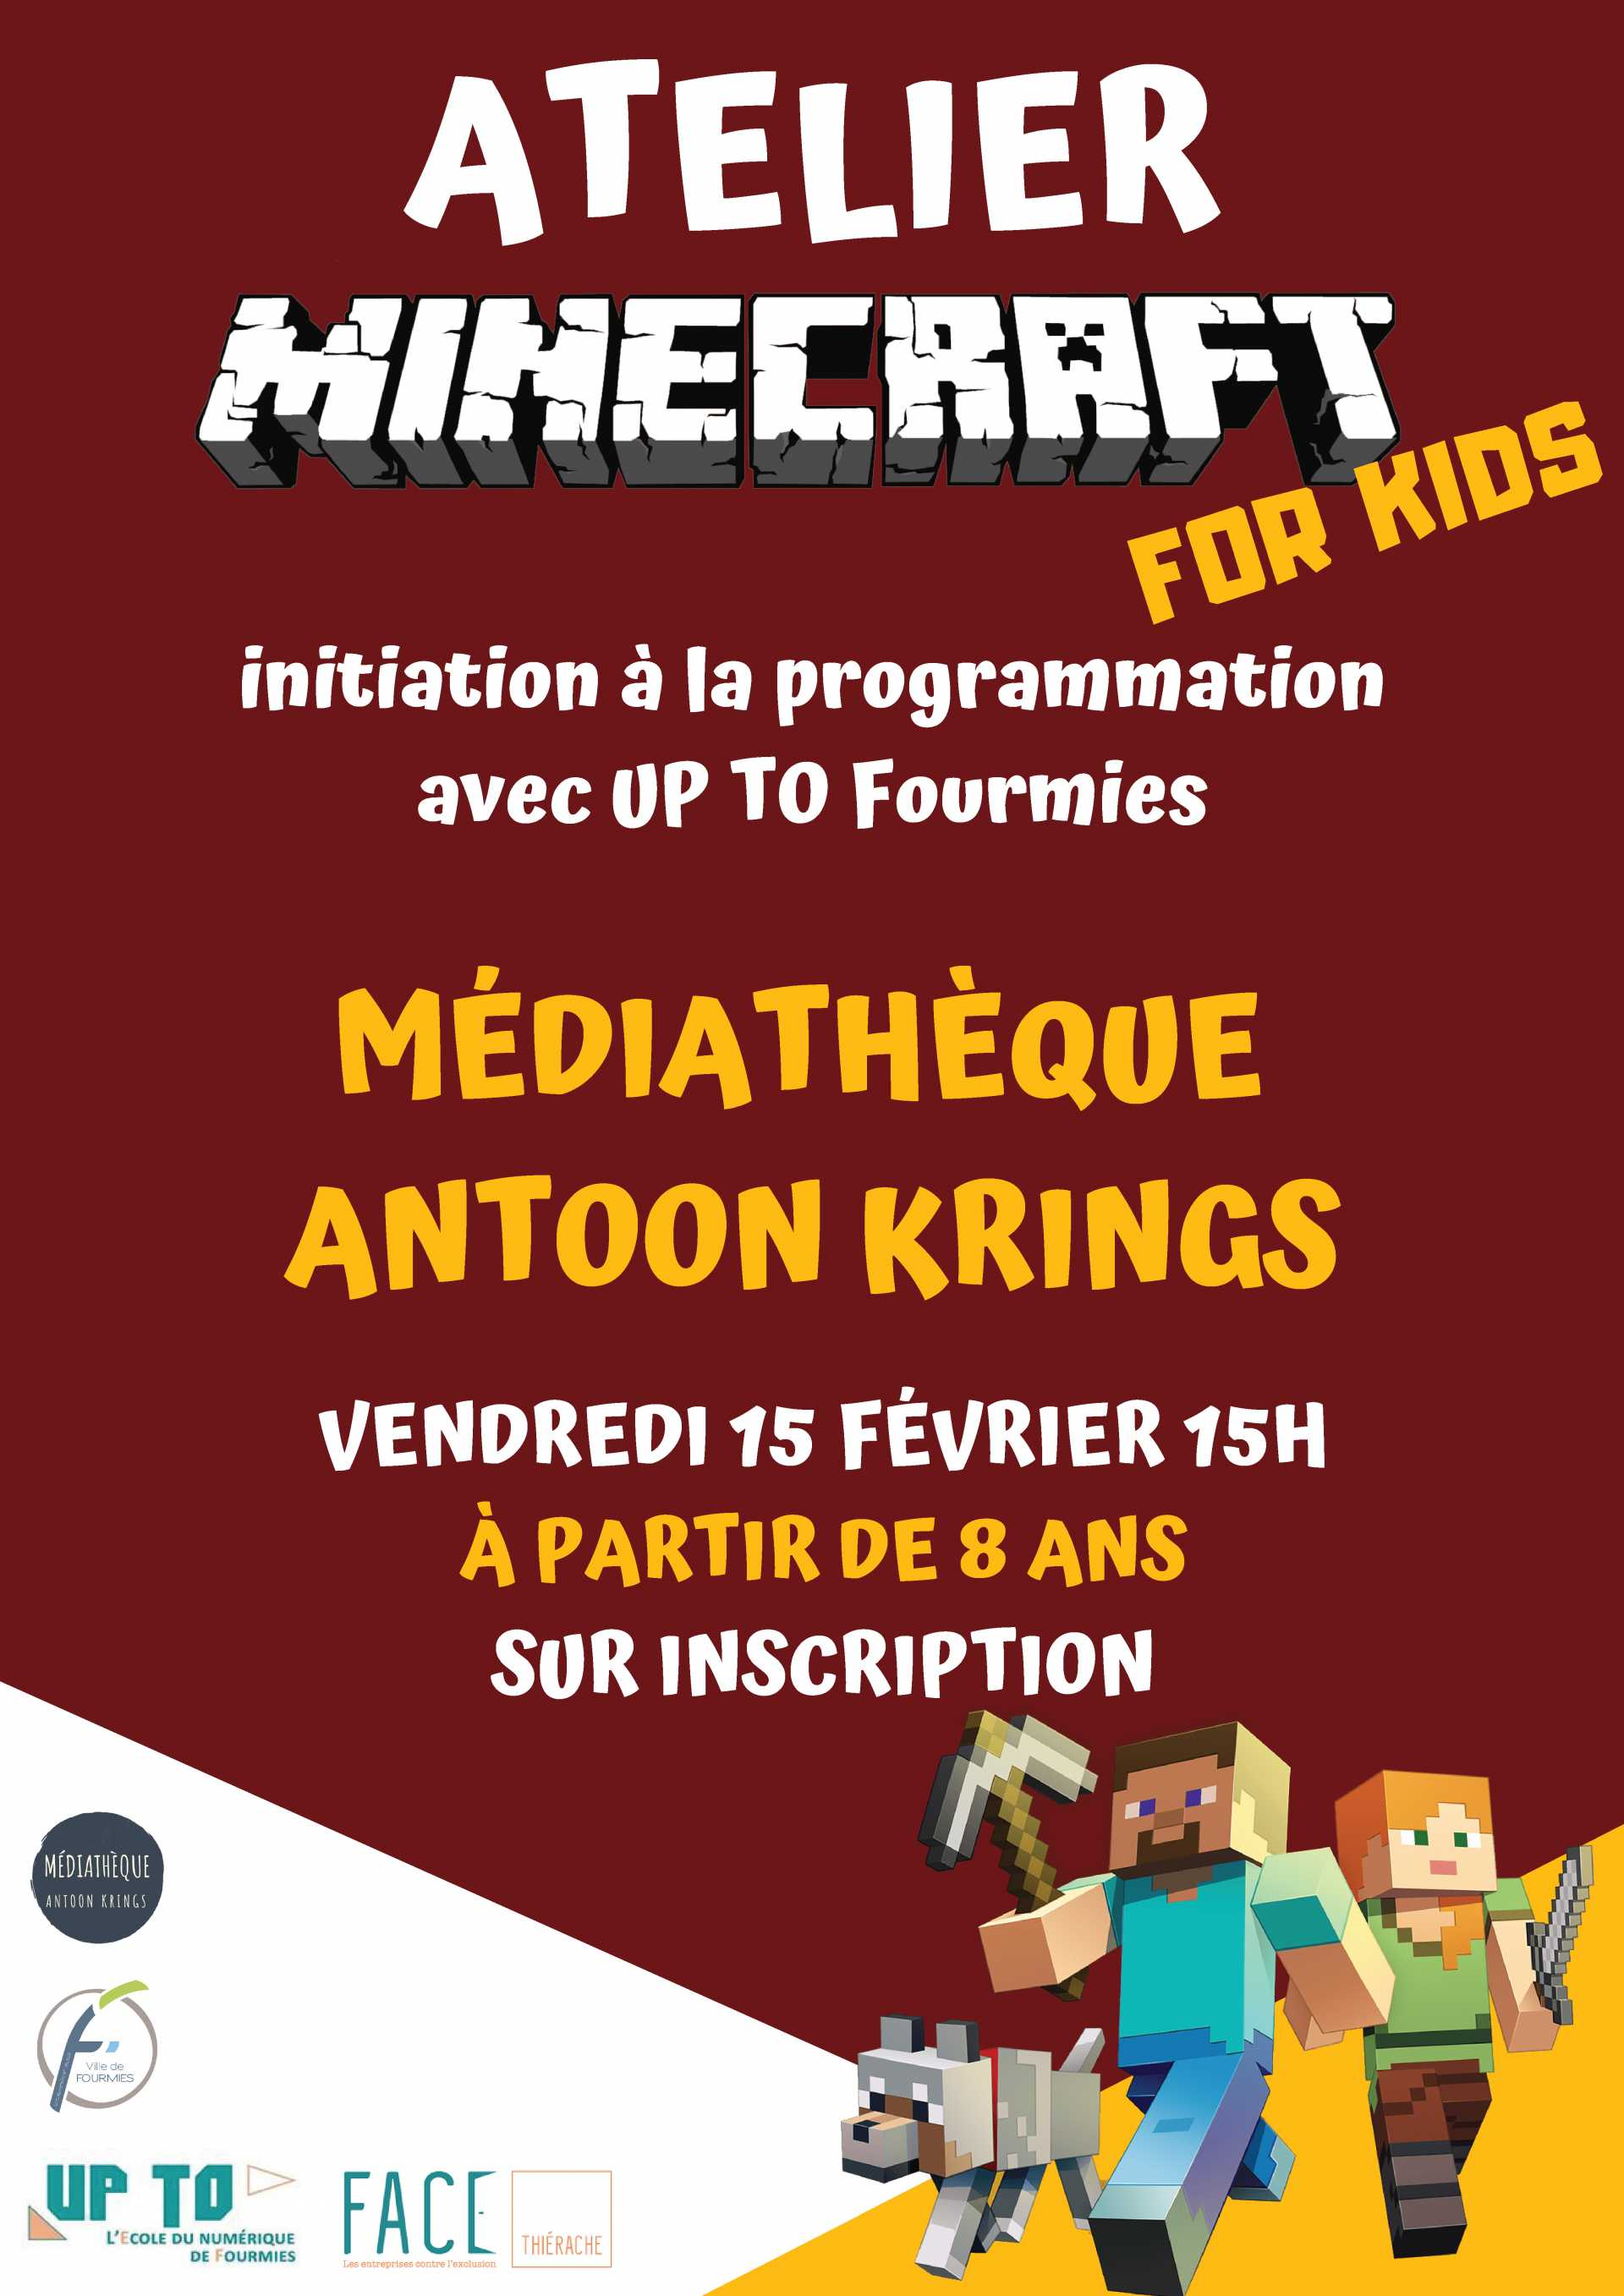 Atelier minecraft for kids fourmies sud avesnois - Eppe minecraft ...